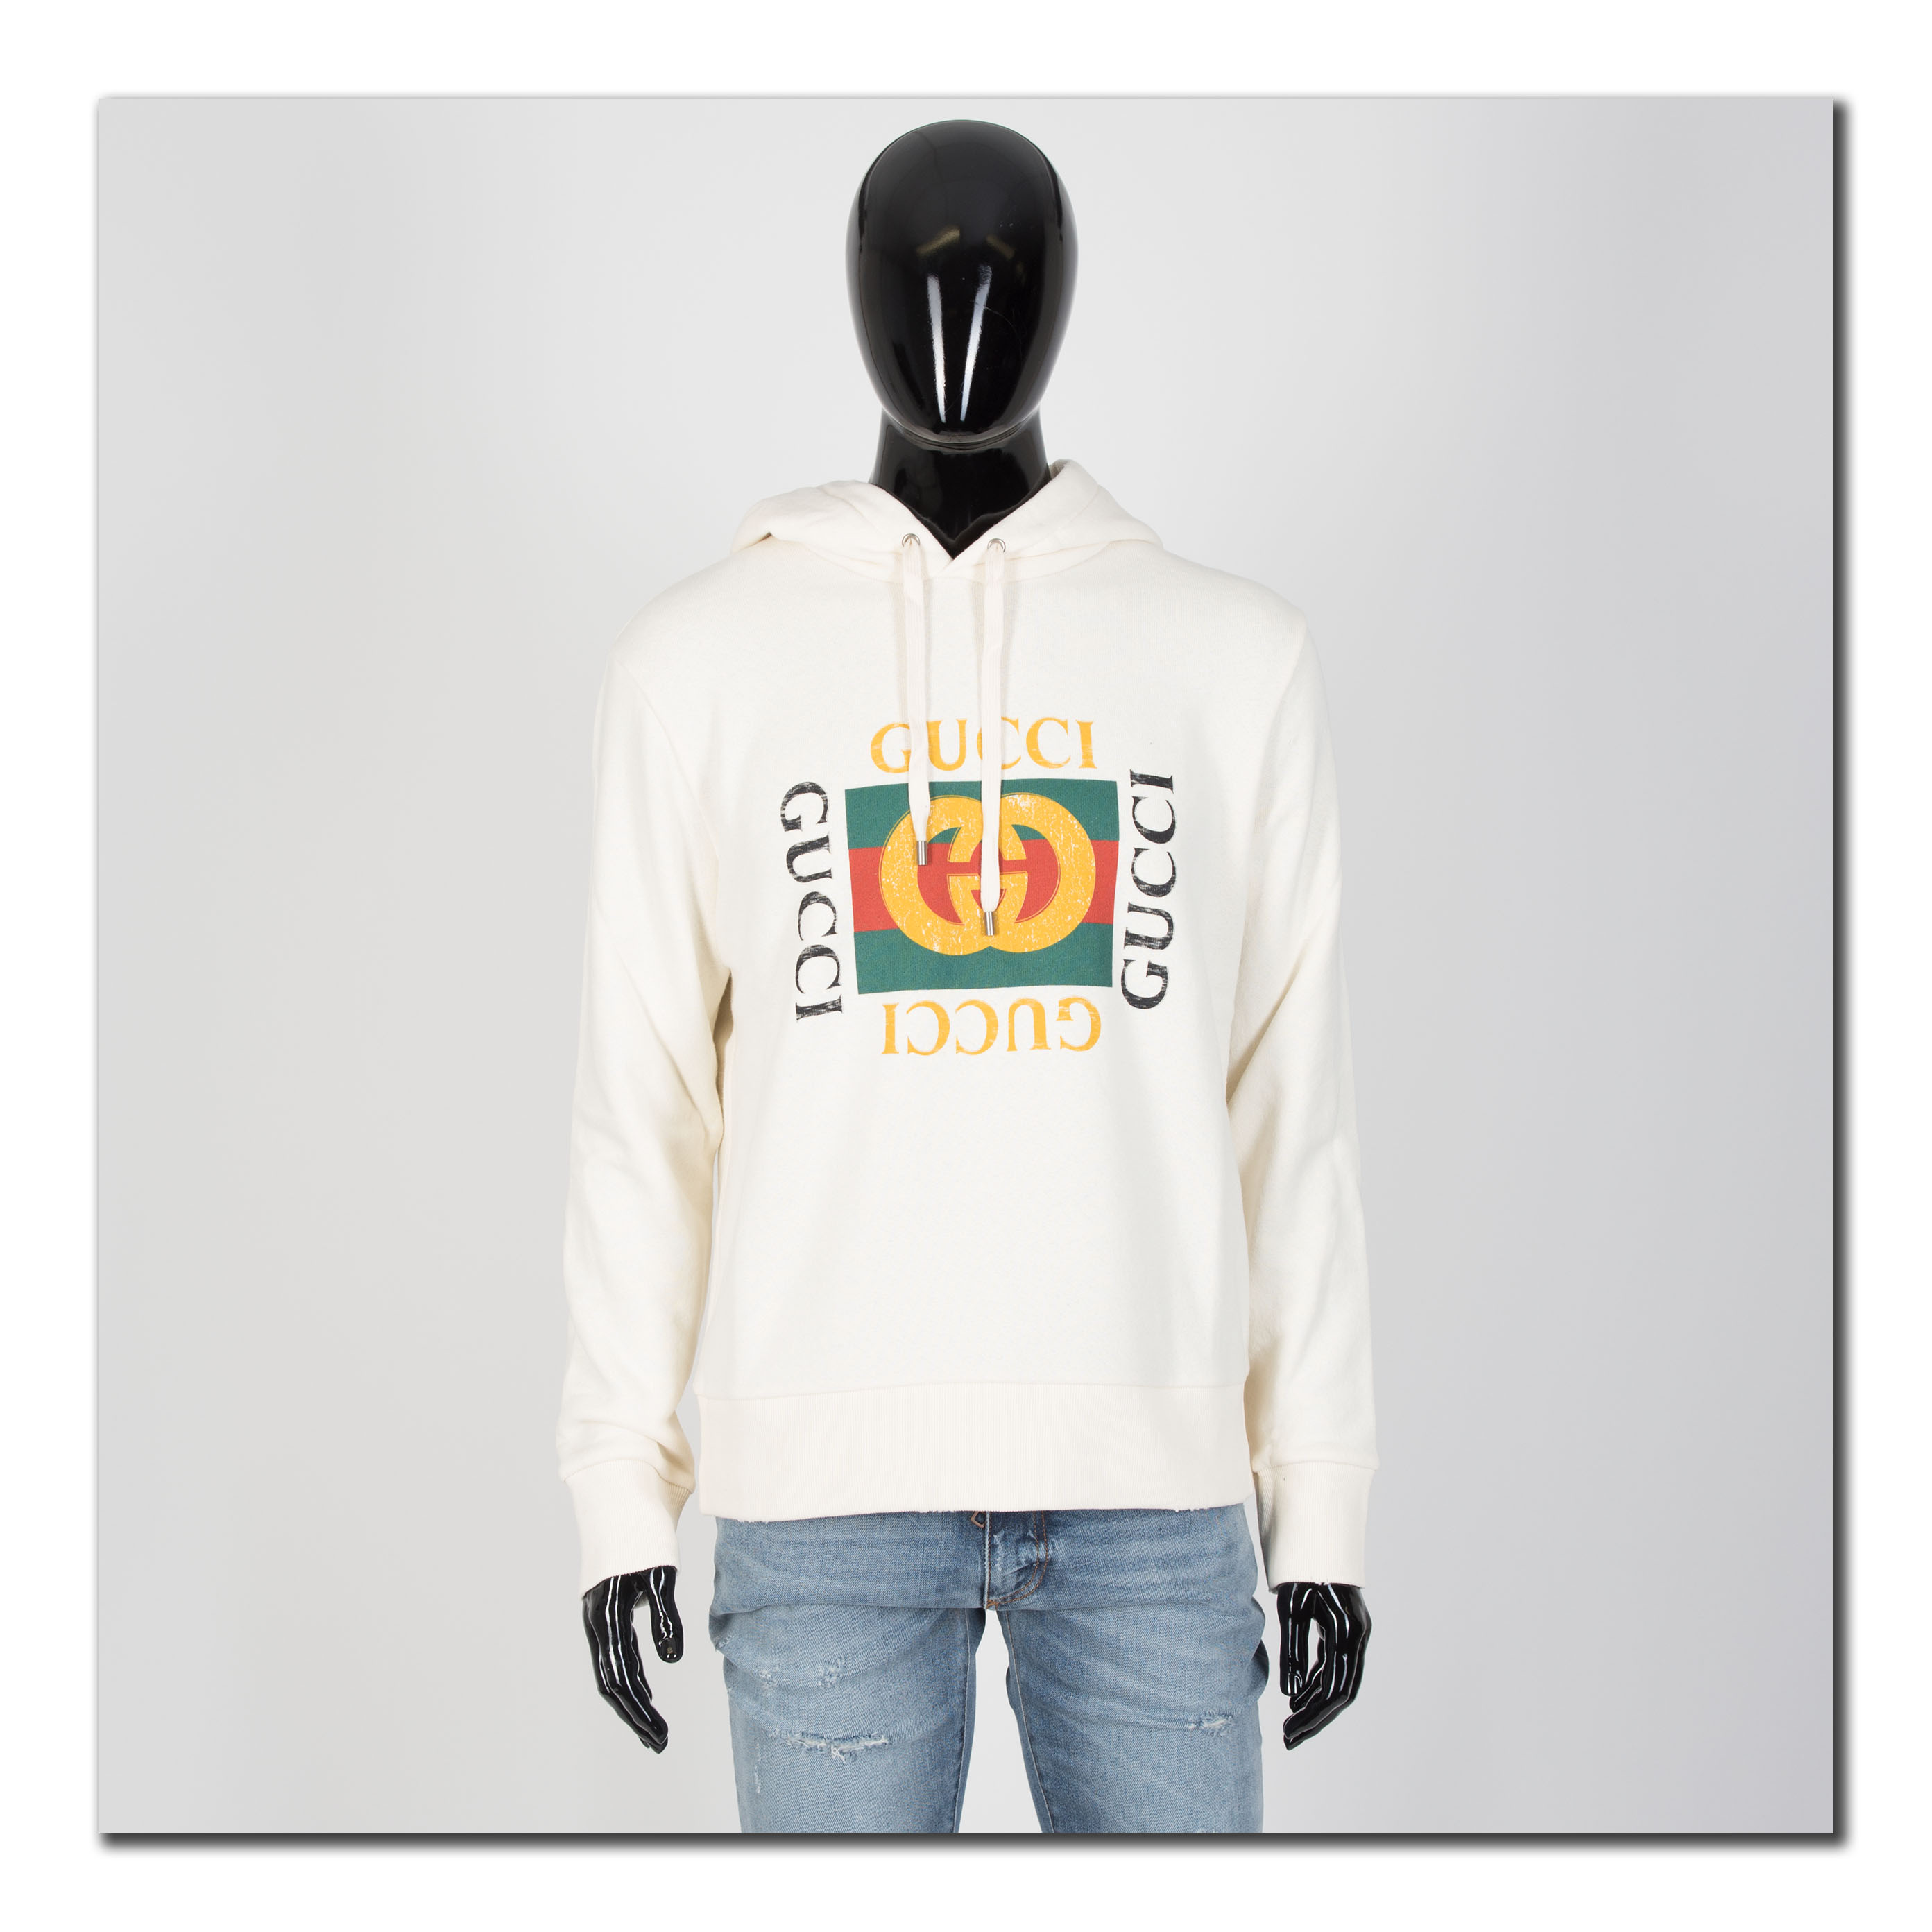 Details about GUCCI 1280$ Oversize Sweatshirt With Vintage Gucci Logo In  Off White.